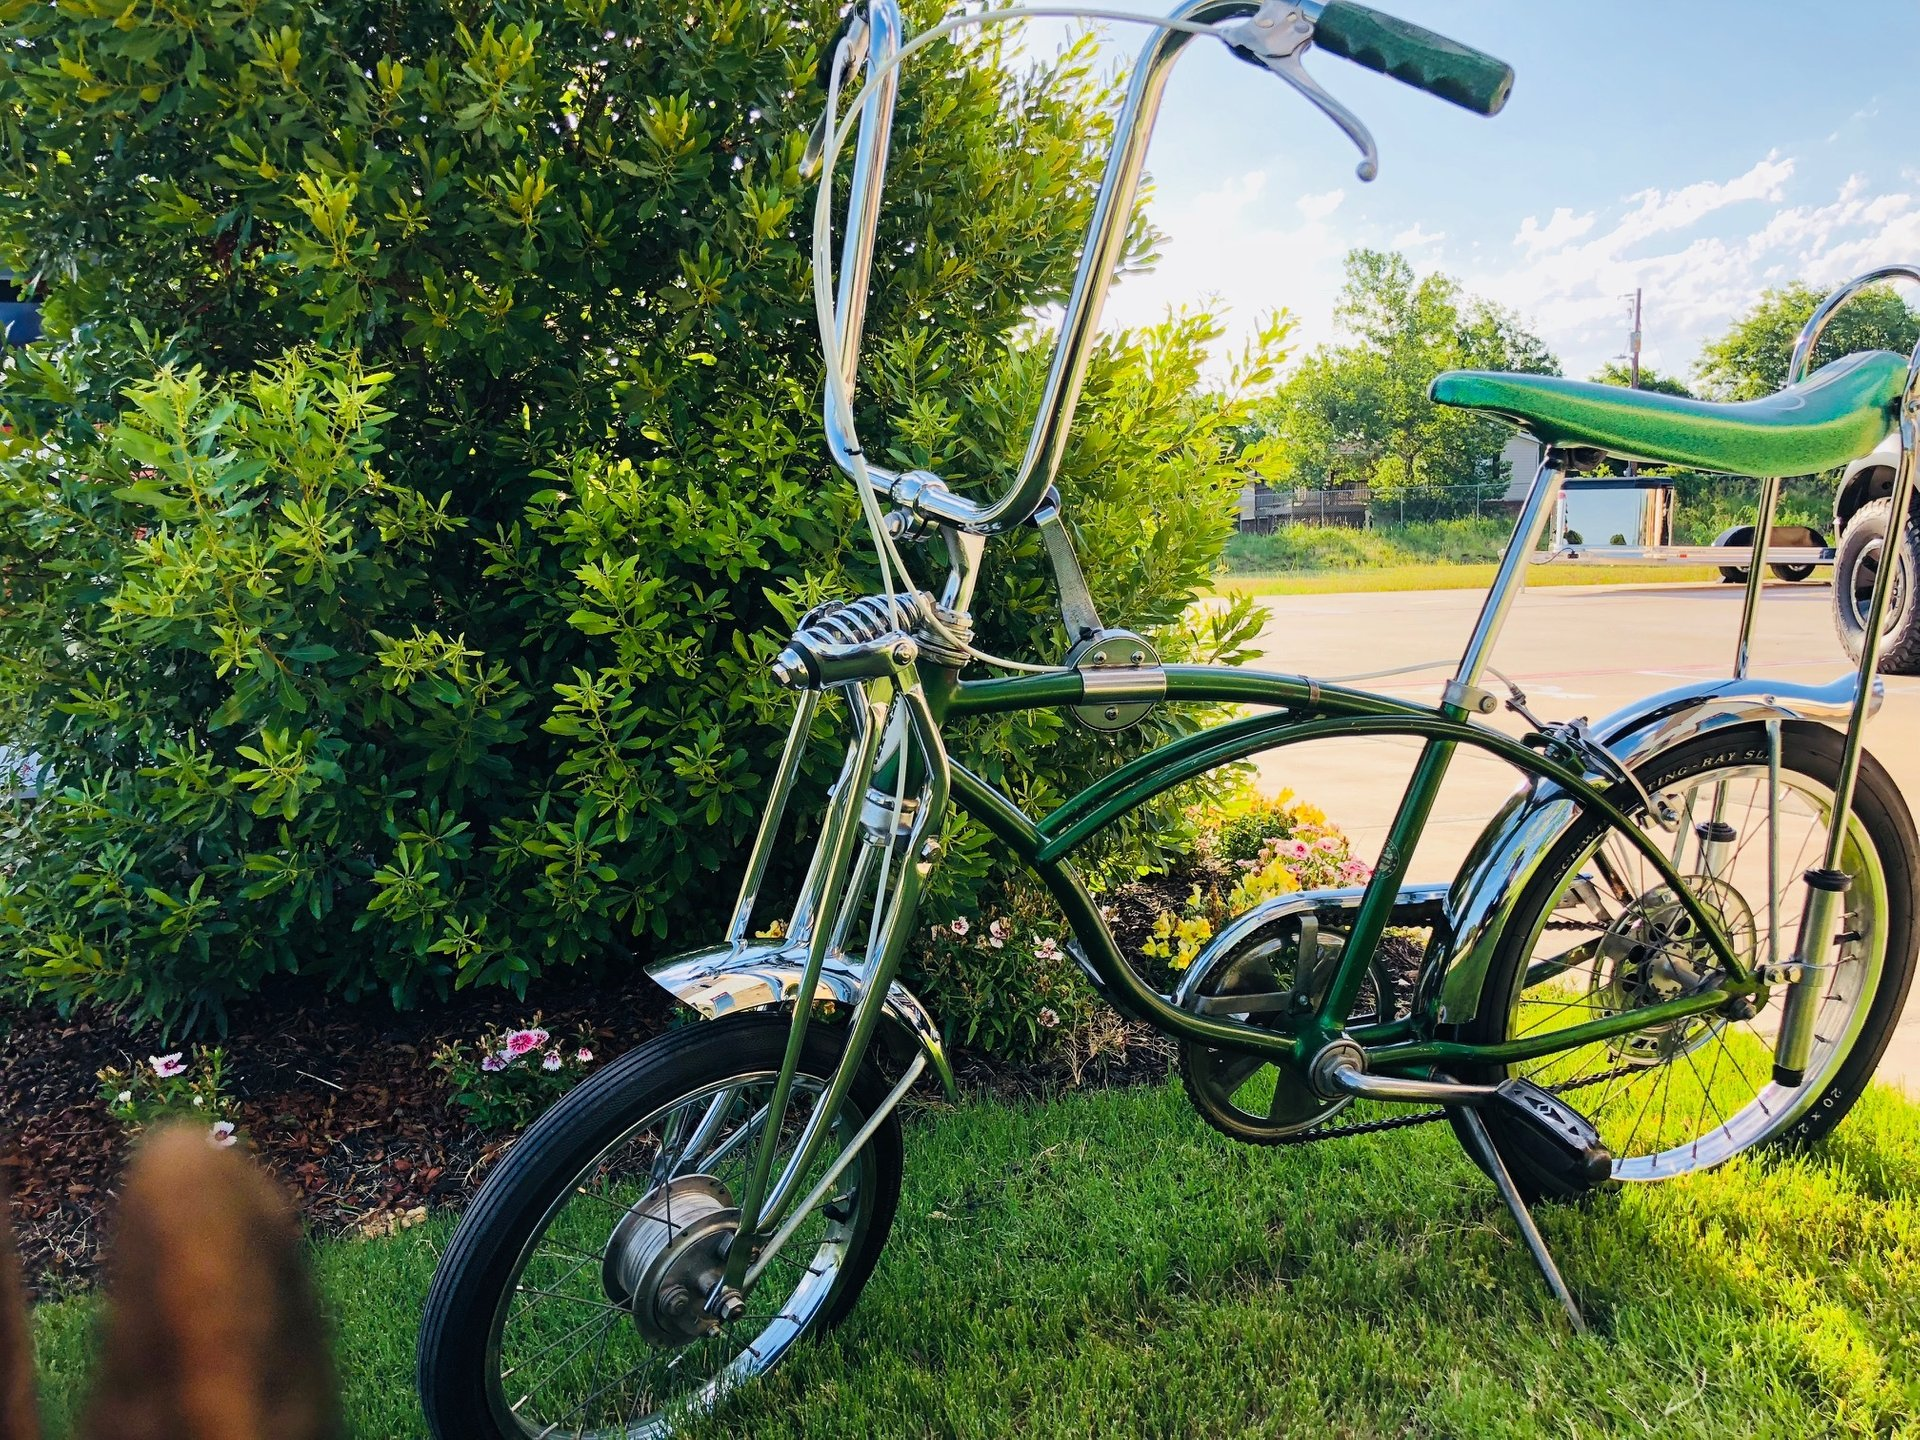 1970 schwinn pea picker bicycle